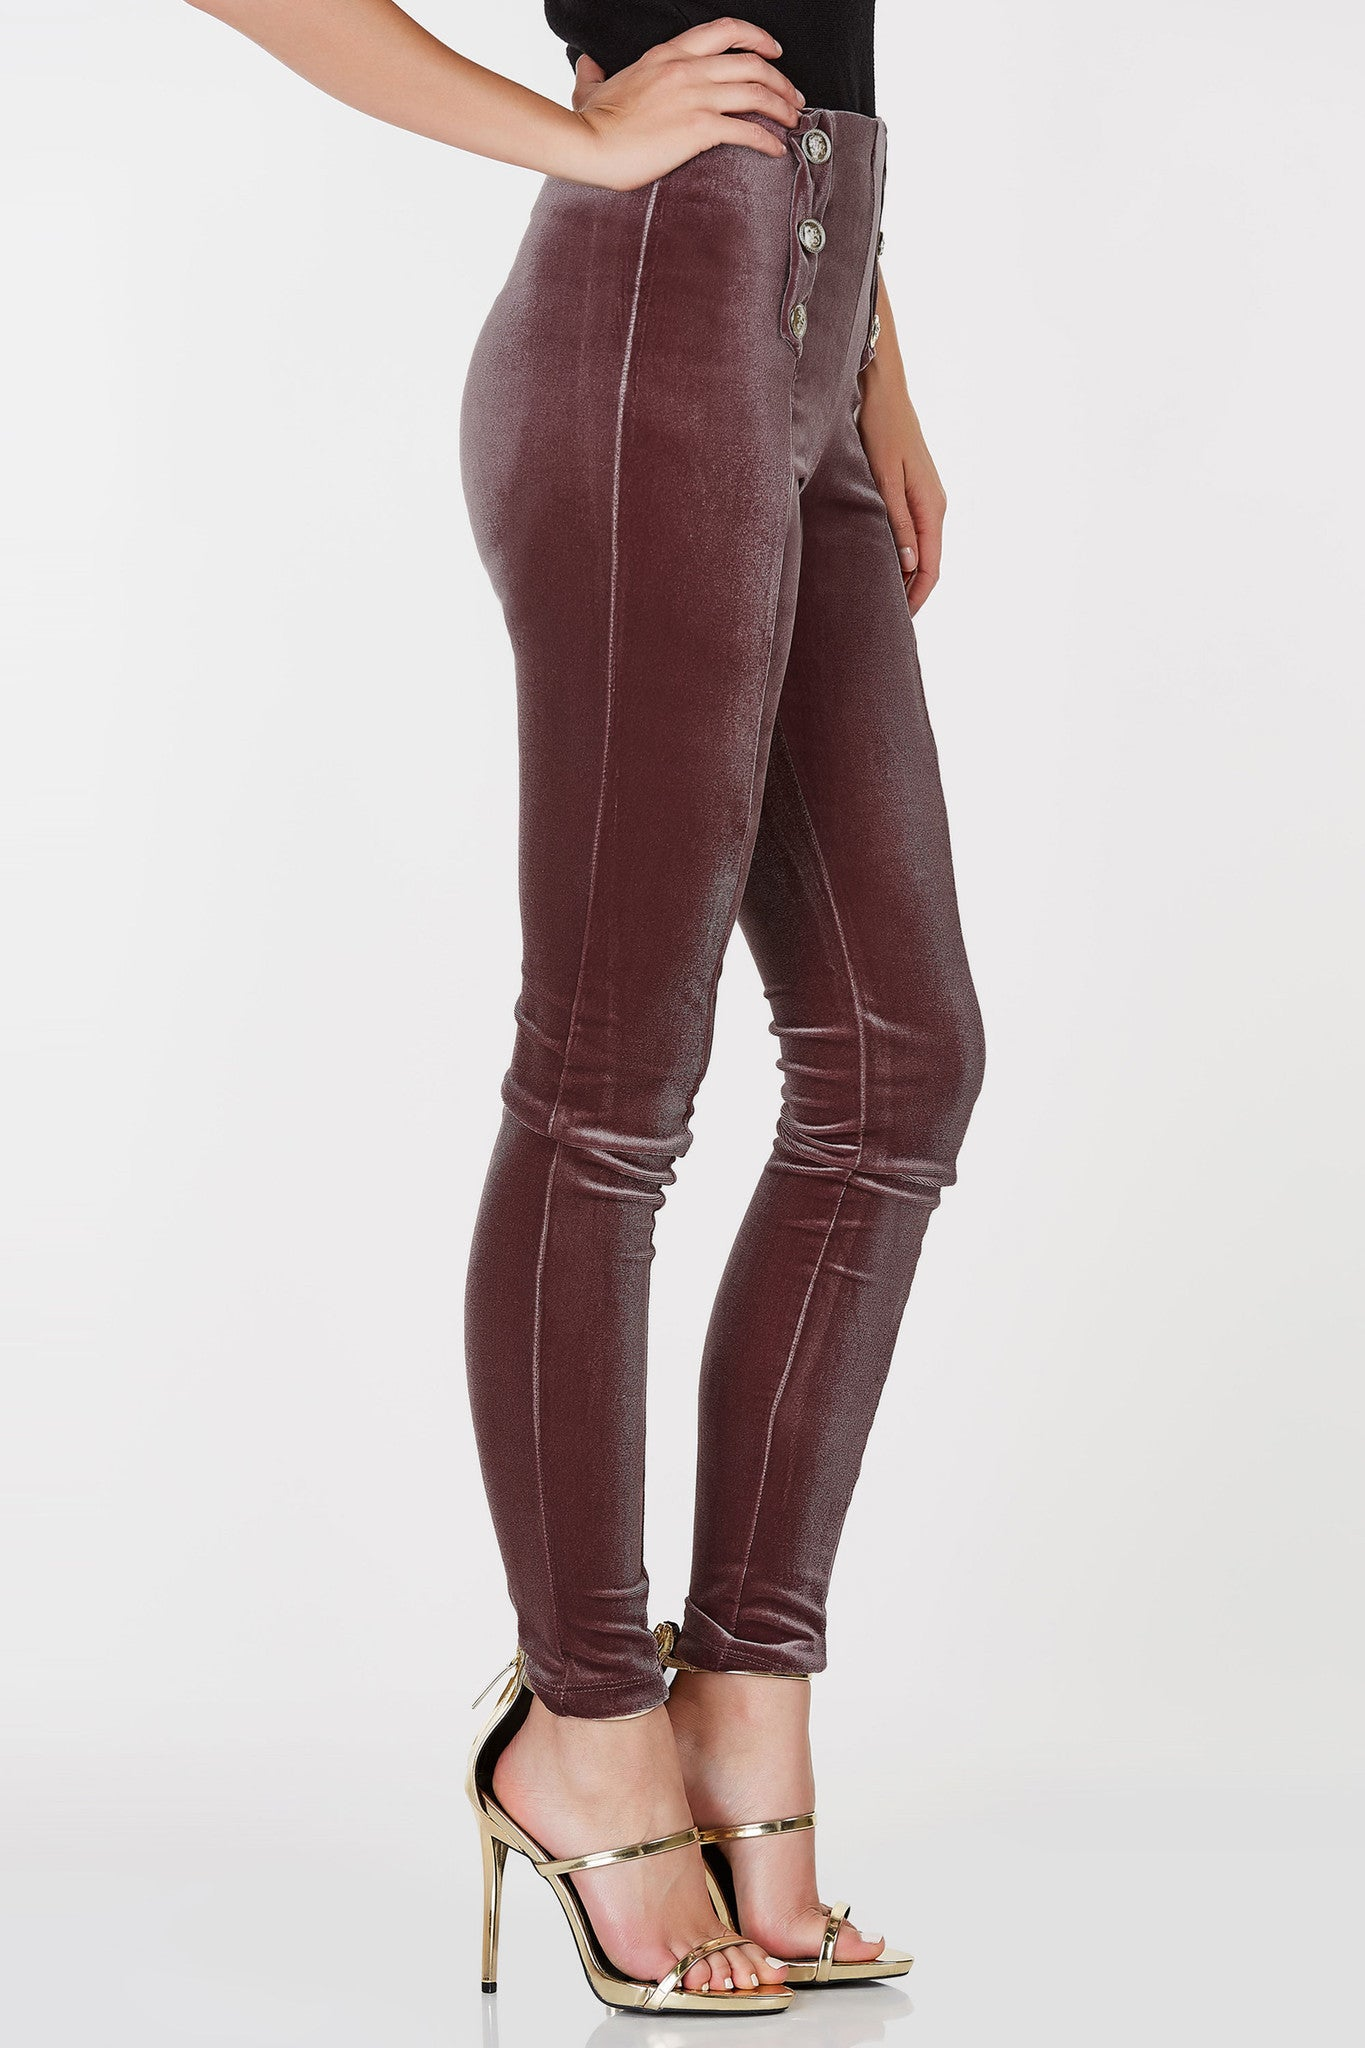 High waisted velvet leggings with emblem button detailing in front.